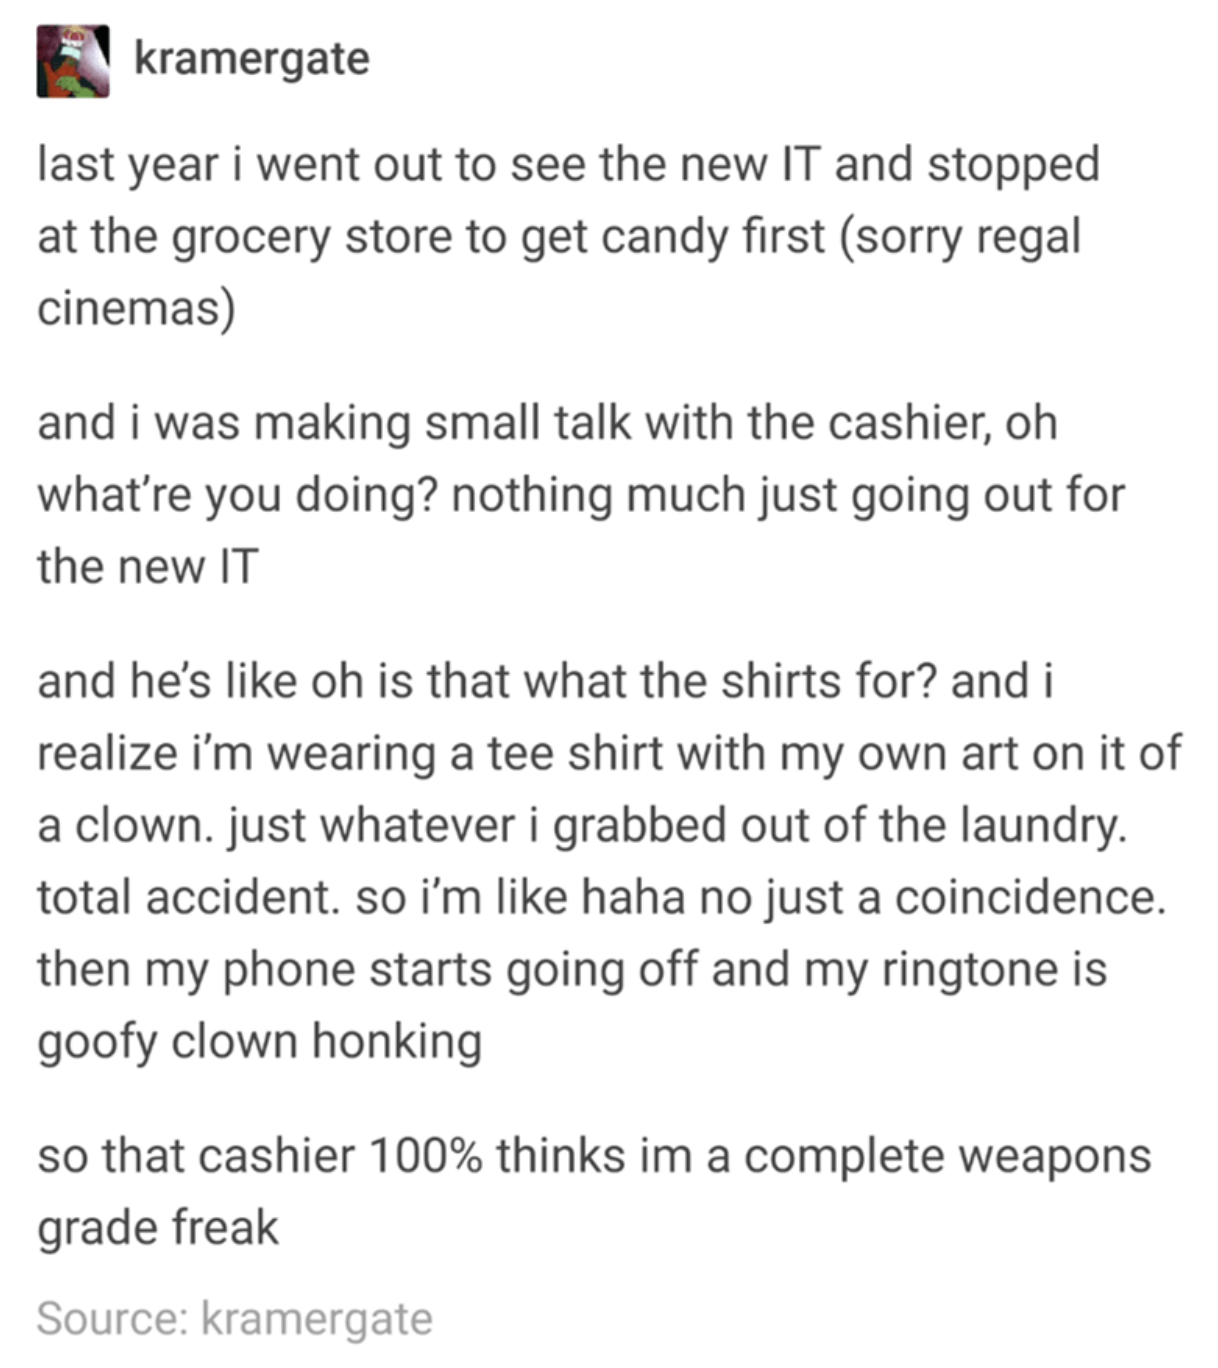 tumblr story about a person seeing IT and not realizing they were wearing a clown shirt and looking like a crazy person